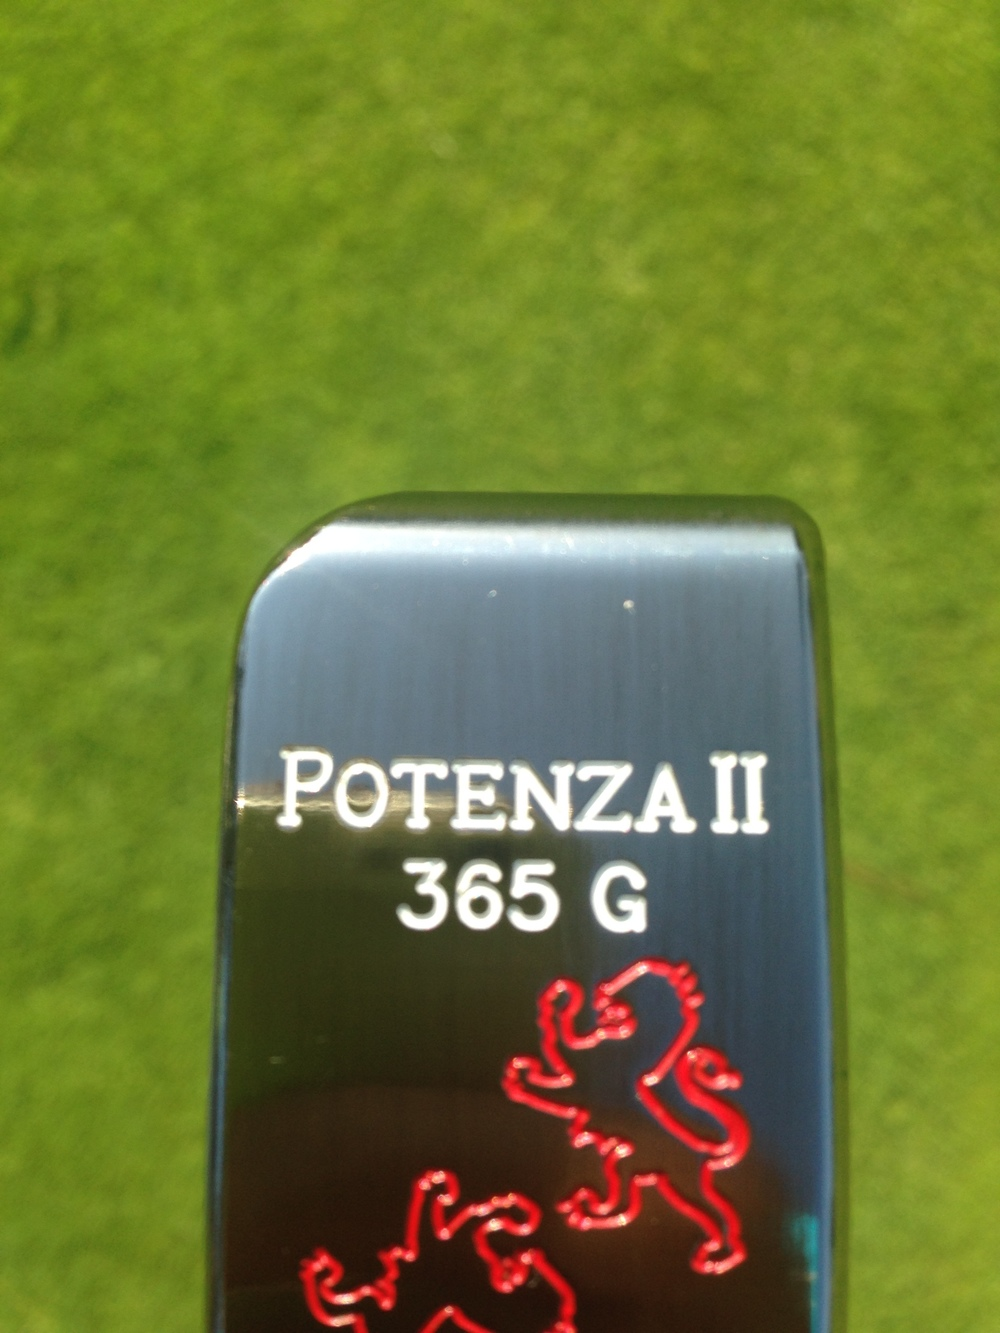 The Potenza II features a 365g head weight